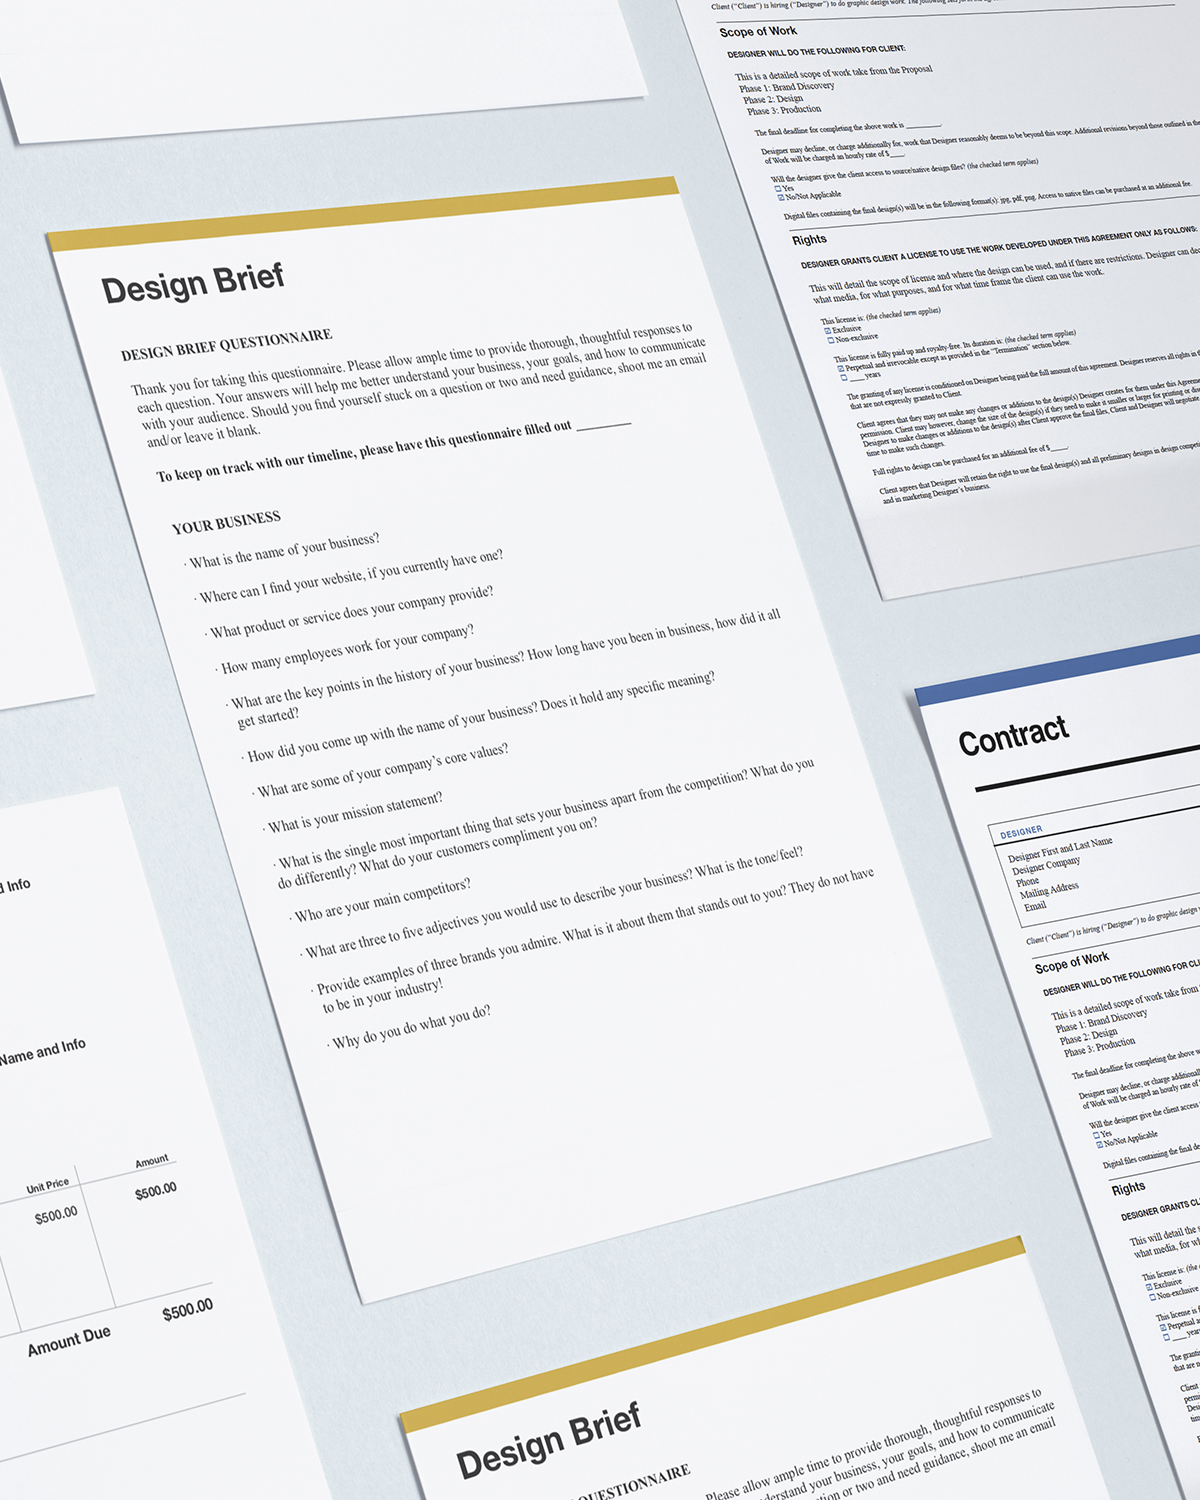 pre-lance toolkit templates for designers